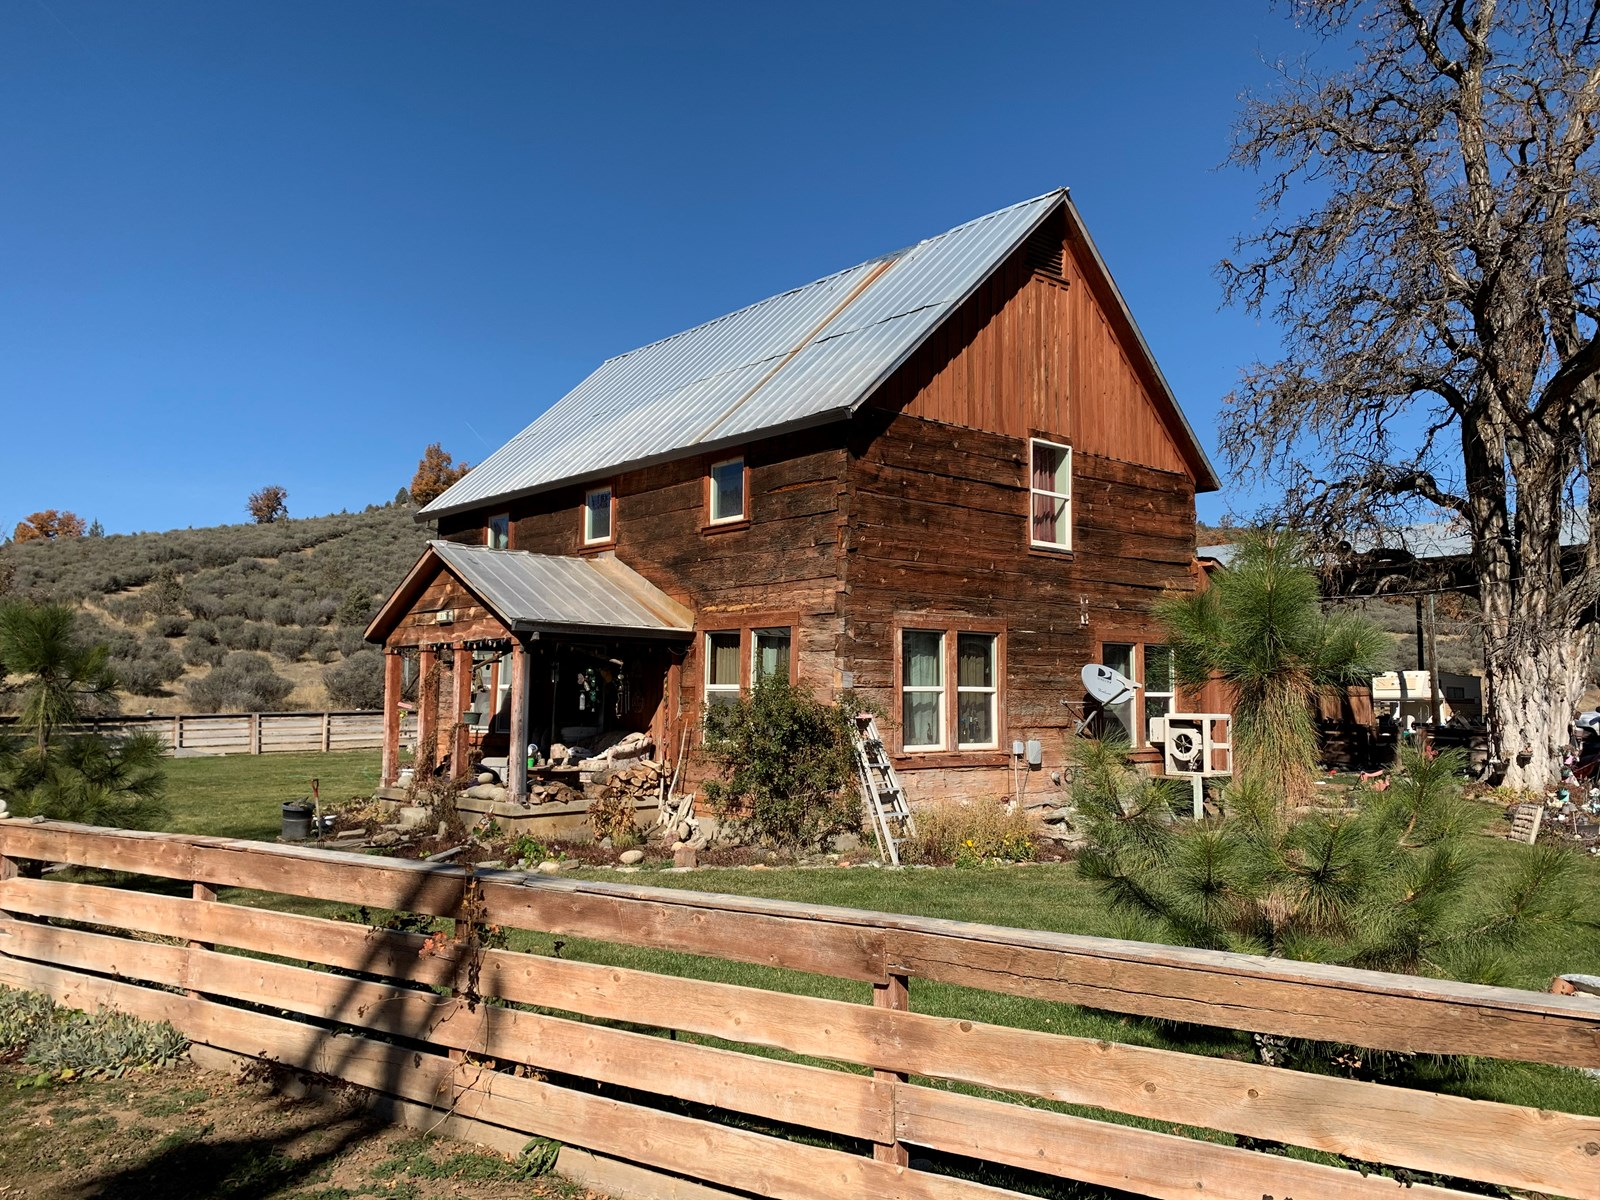 Hunting - Cattle Ranch for Sale in Siskiyou County, Cal